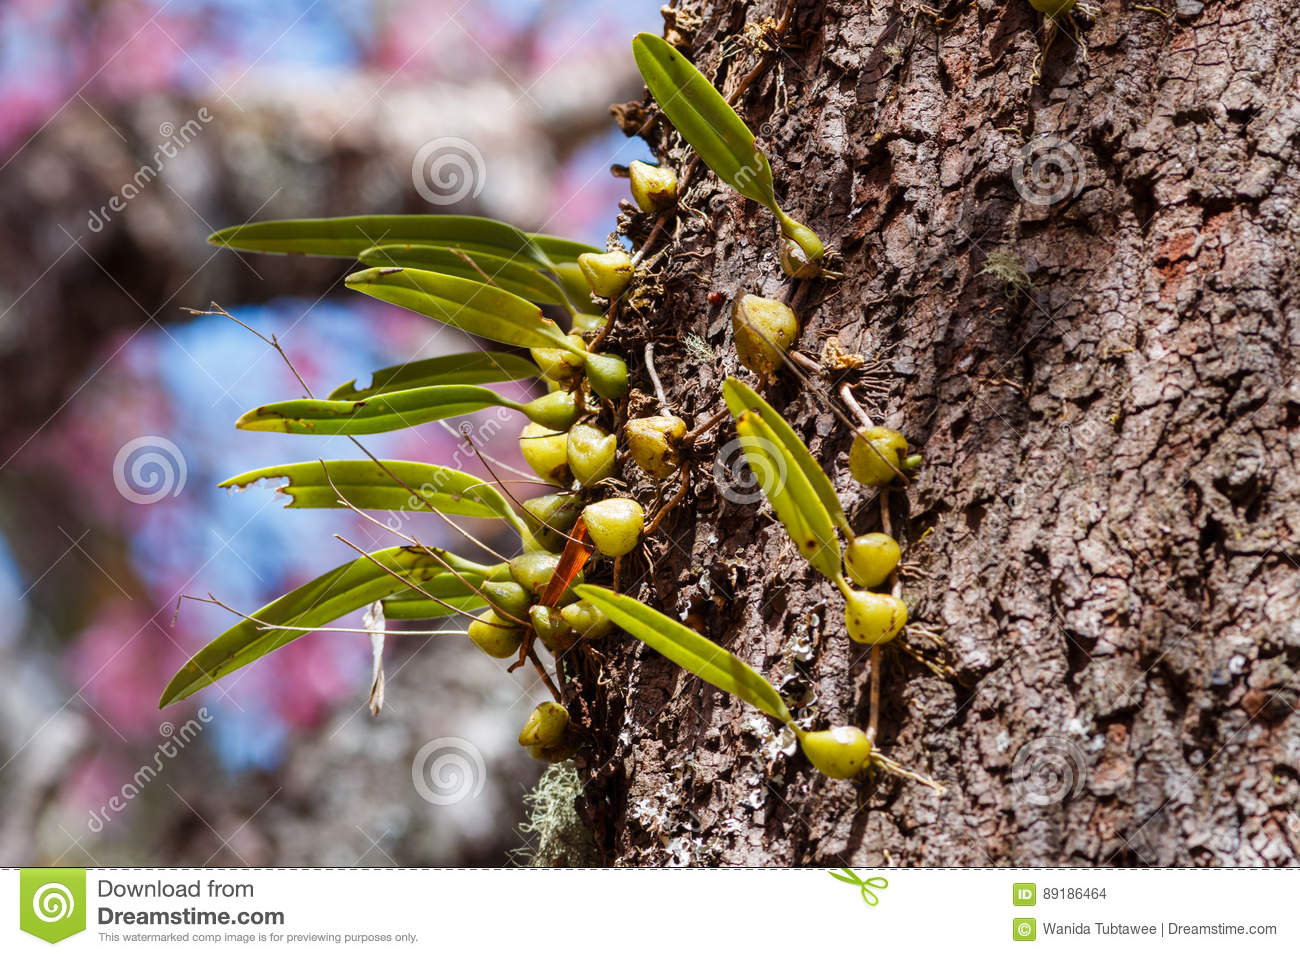 Beautiful flowers orchids in nature stock photo image of flora download beautiful flowers orchids in nature stock photo image of flora bright izmirmasajfo